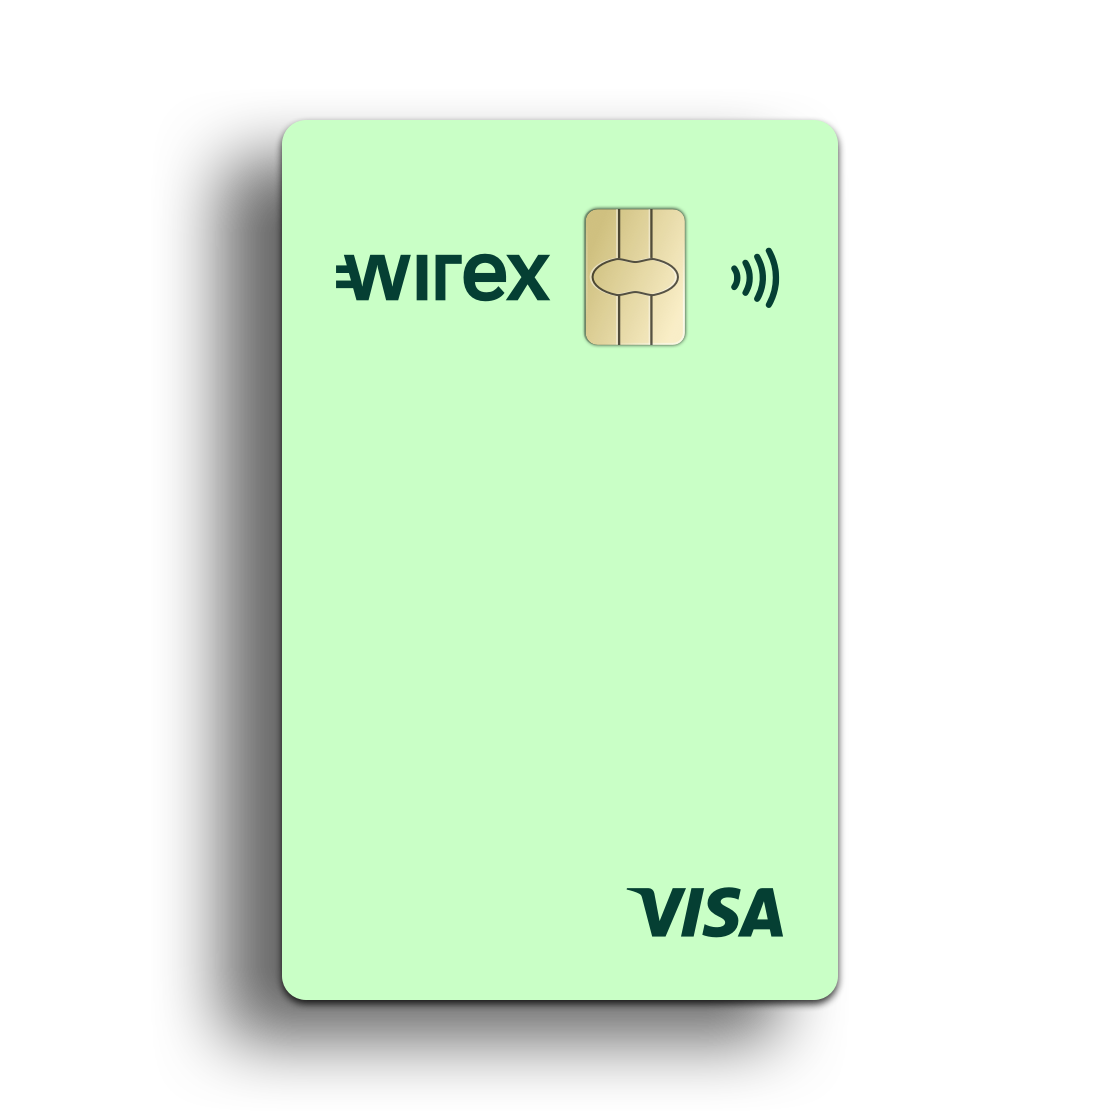 Wirex Card New Picture of Card